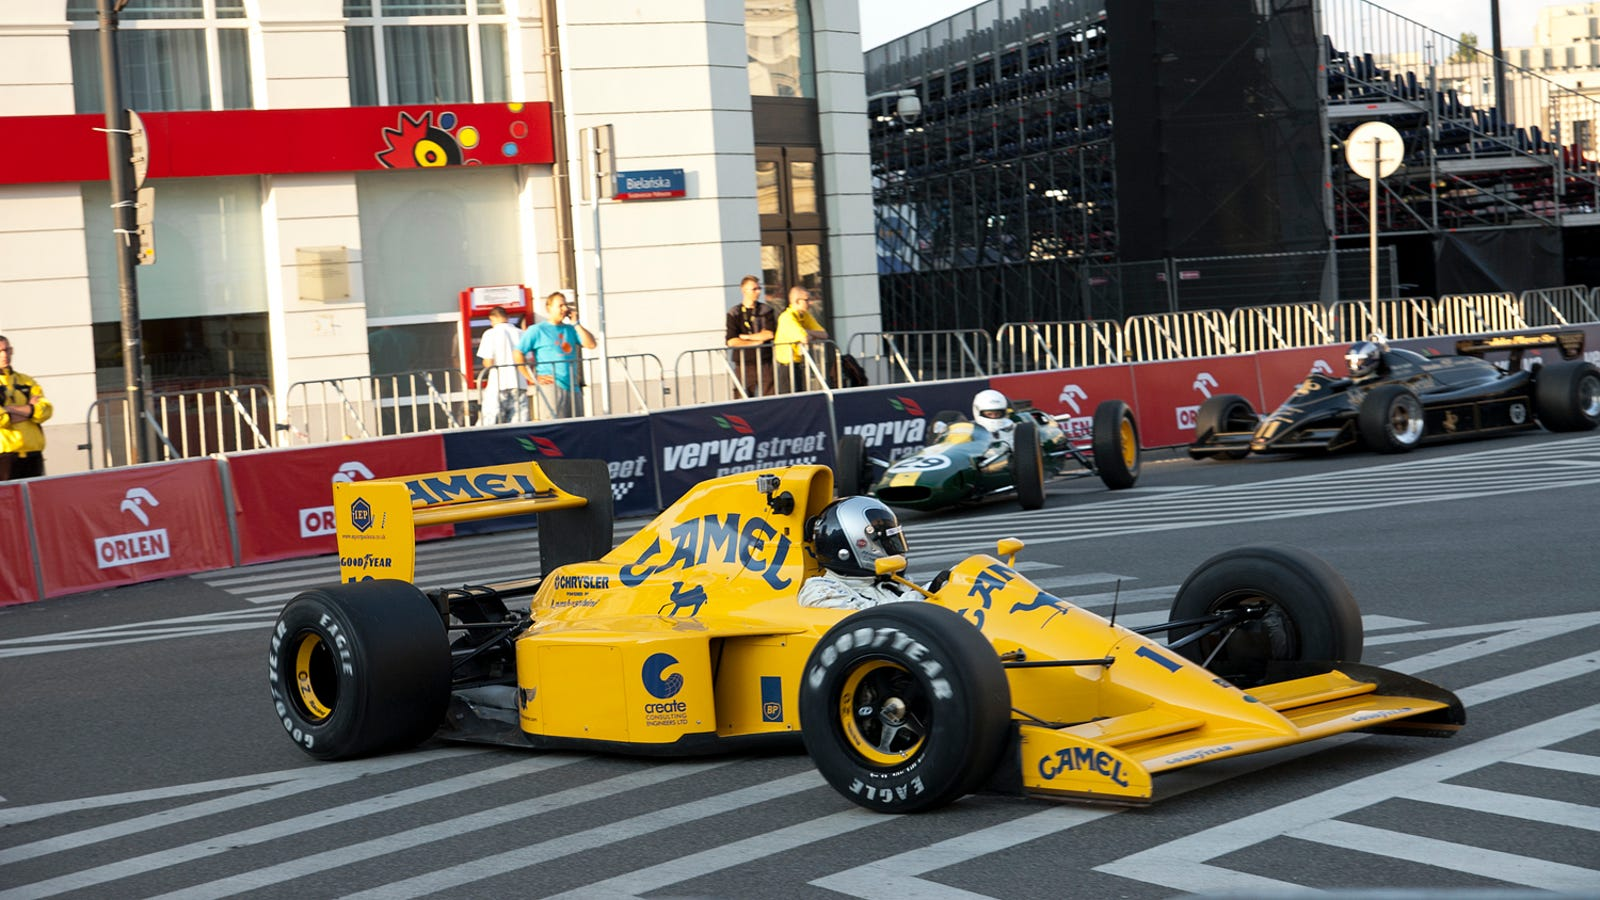 Spectacular Collection Of Race Cars Take Over Poland